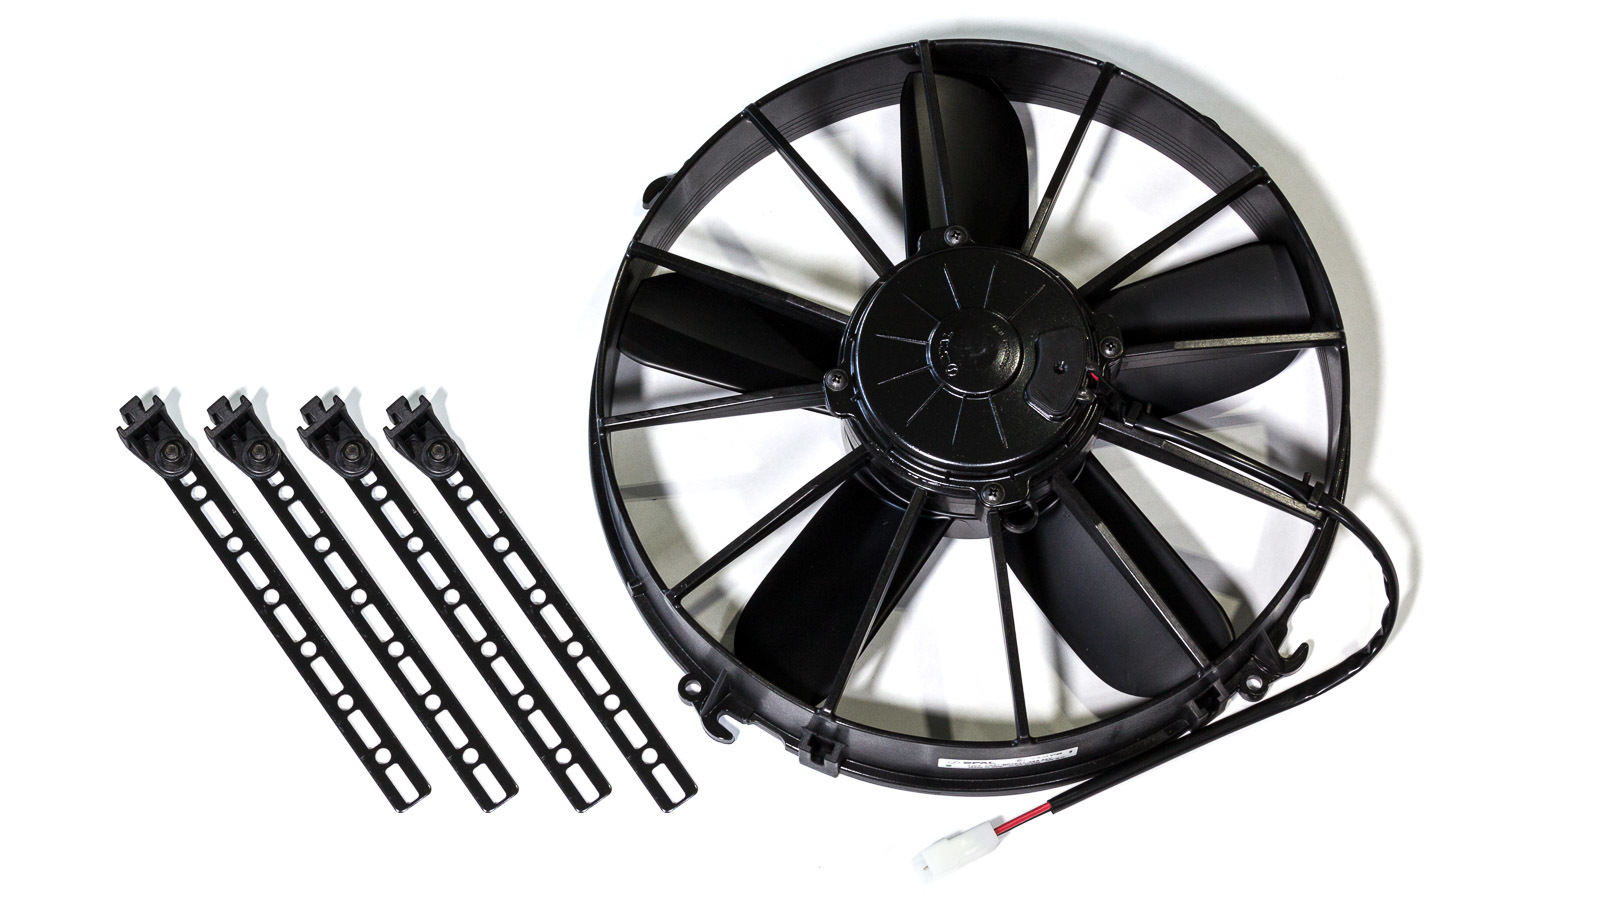 Spal 30102546 Electric Cooling Fan, High Performance, 12 in Fan, Pusher, 1752 CFM Max, 24V, Straight Blade, 13.78 in Diameter, 3.45 in Thick, Plastic, Each